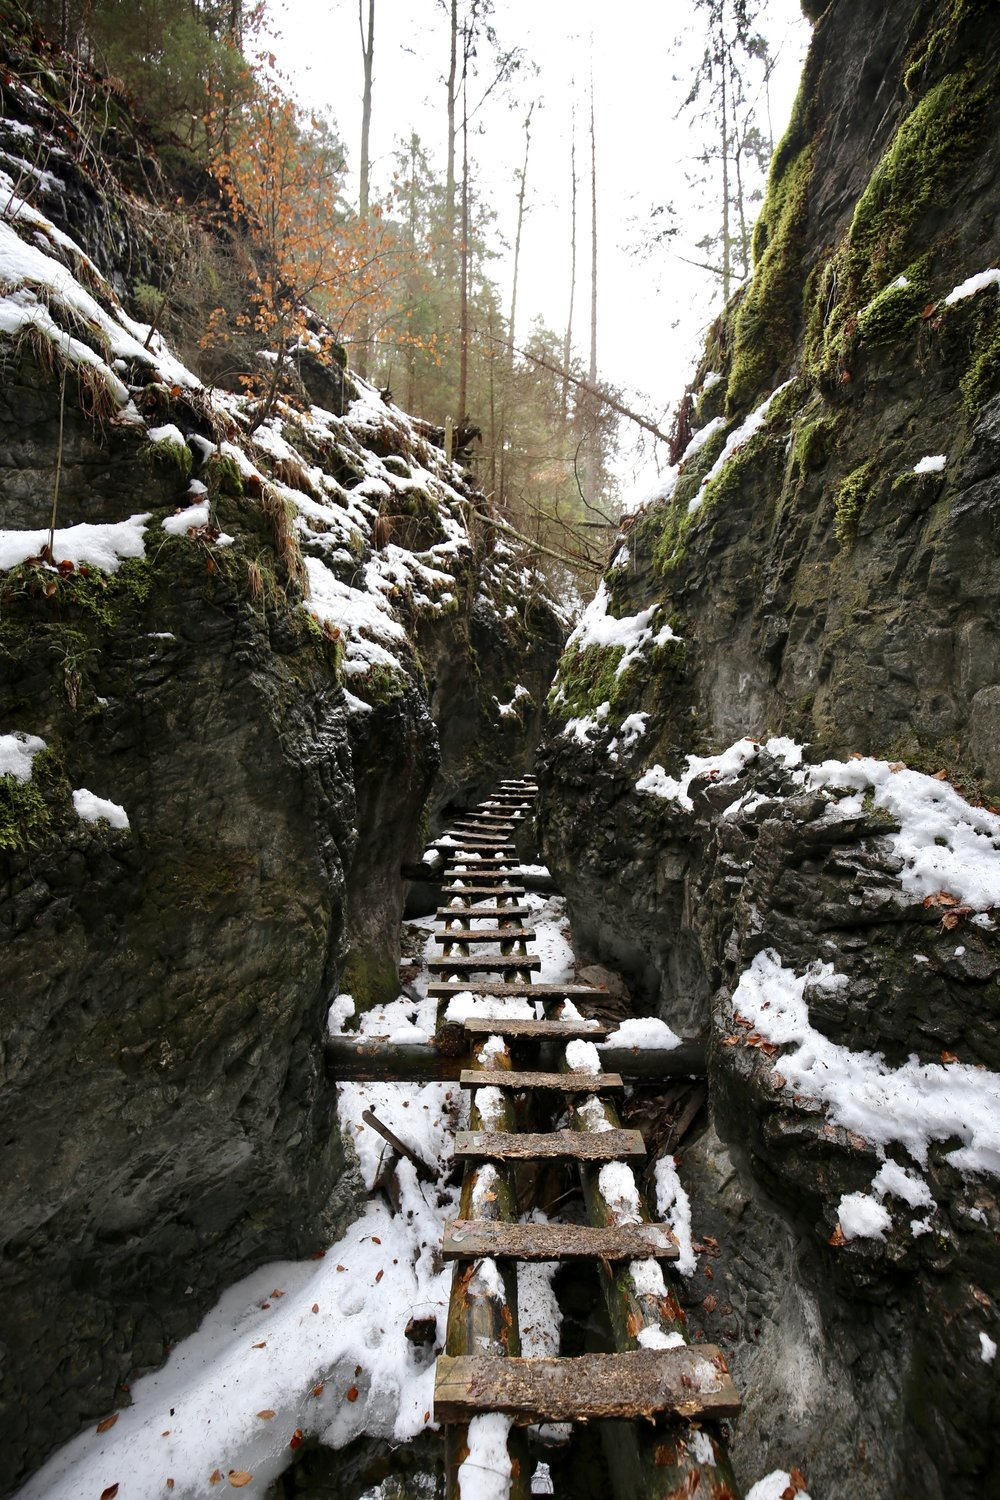 Wooden ladders lead through narrow canyons, cut by a frozen river.